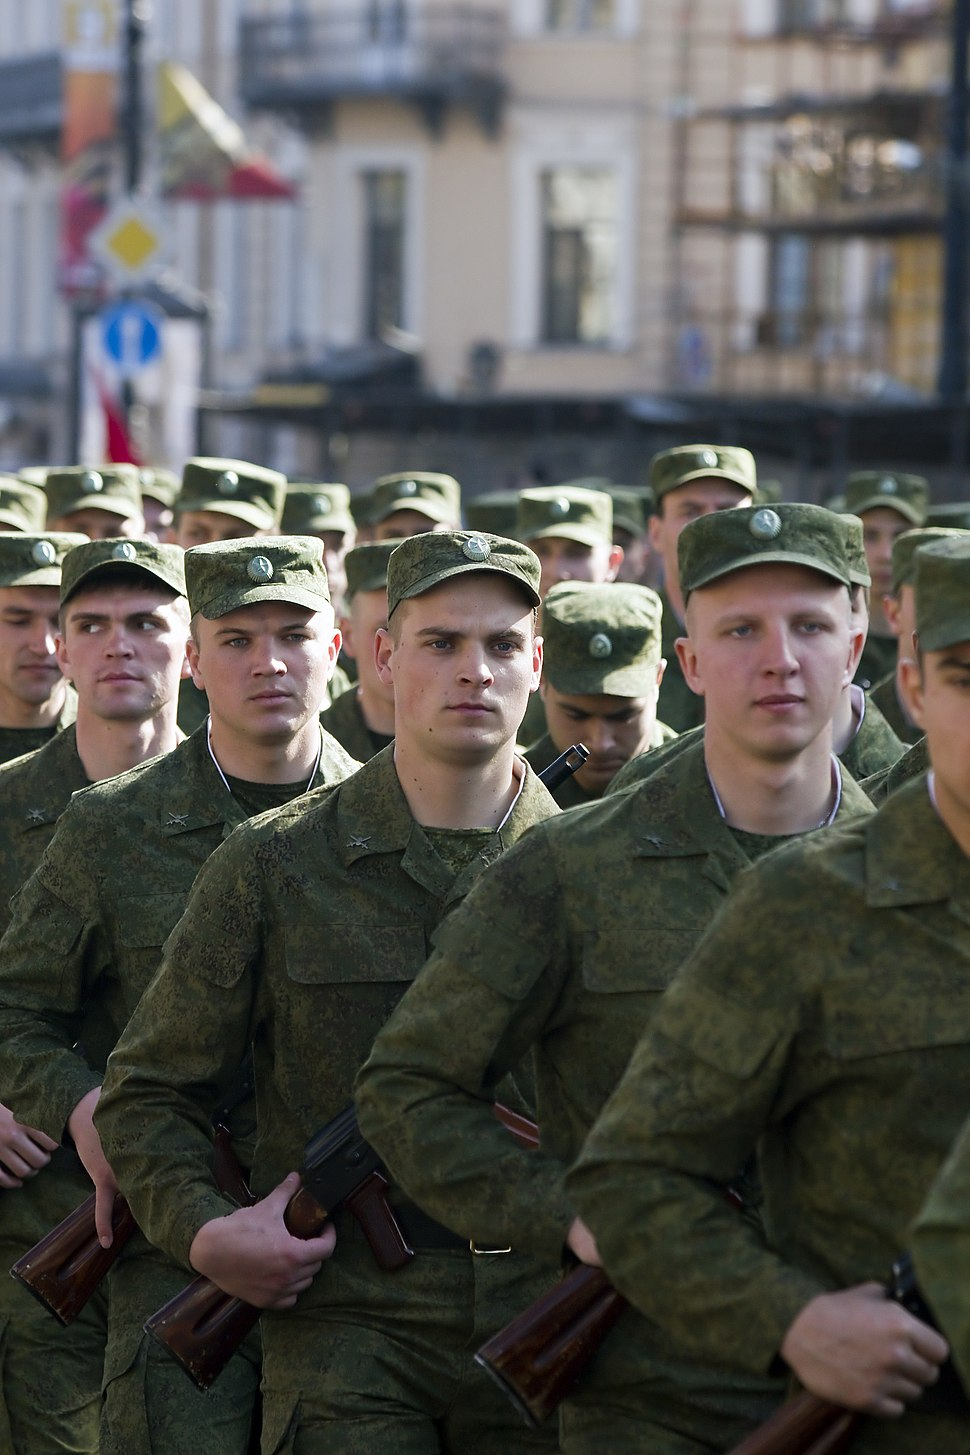 Russiansoldiers-StP2